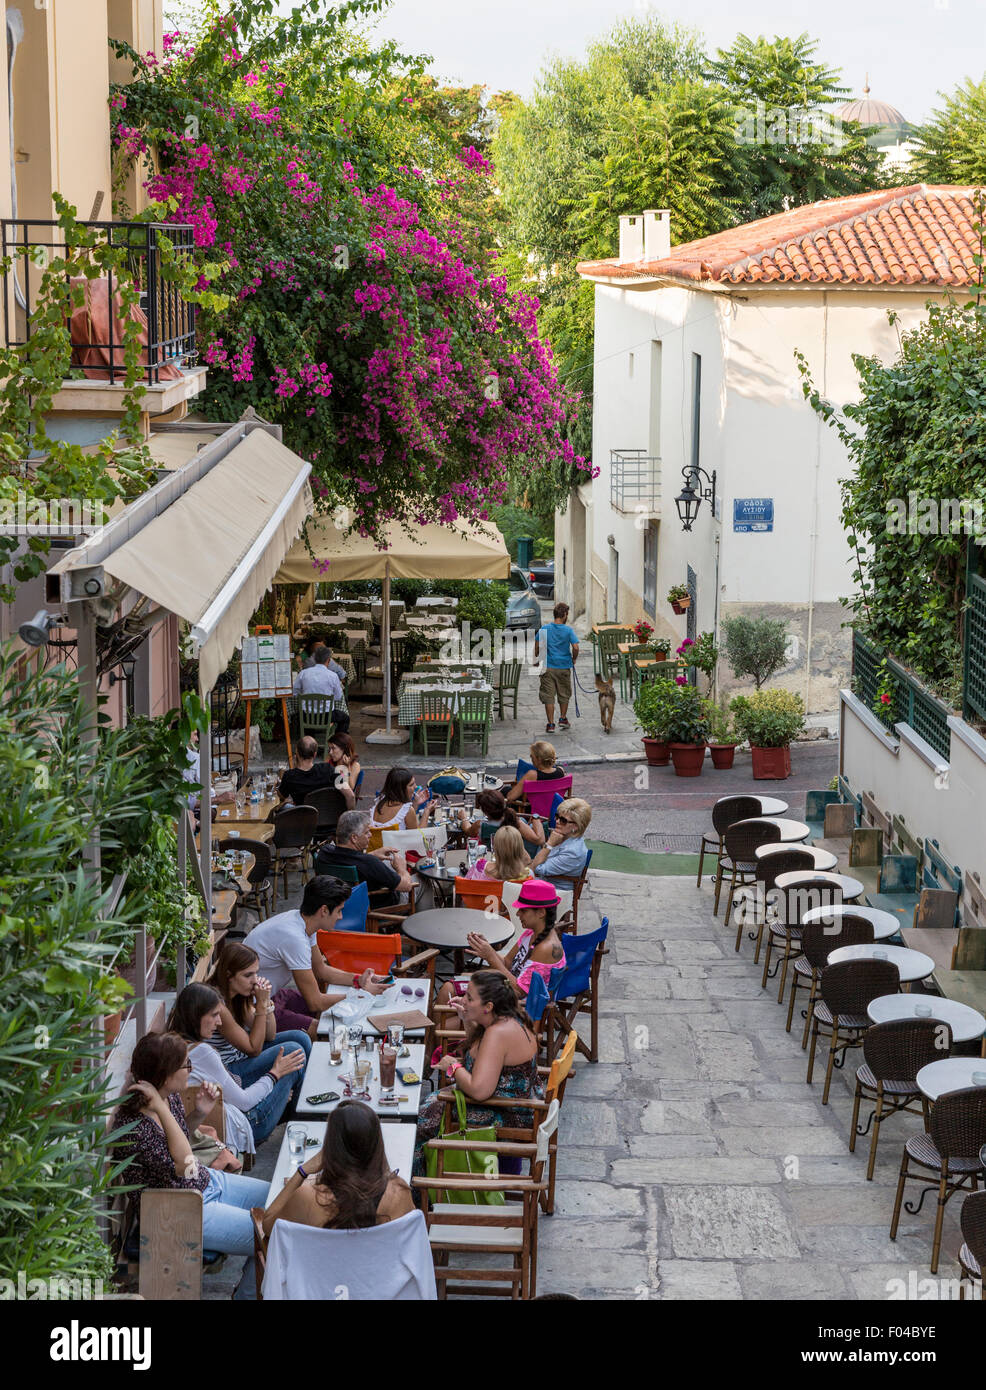 Diners at a cafe on Erechtheos in the Plaka neighborhood of Athens Greece enjoy food and drinks al fresco - Stock Image